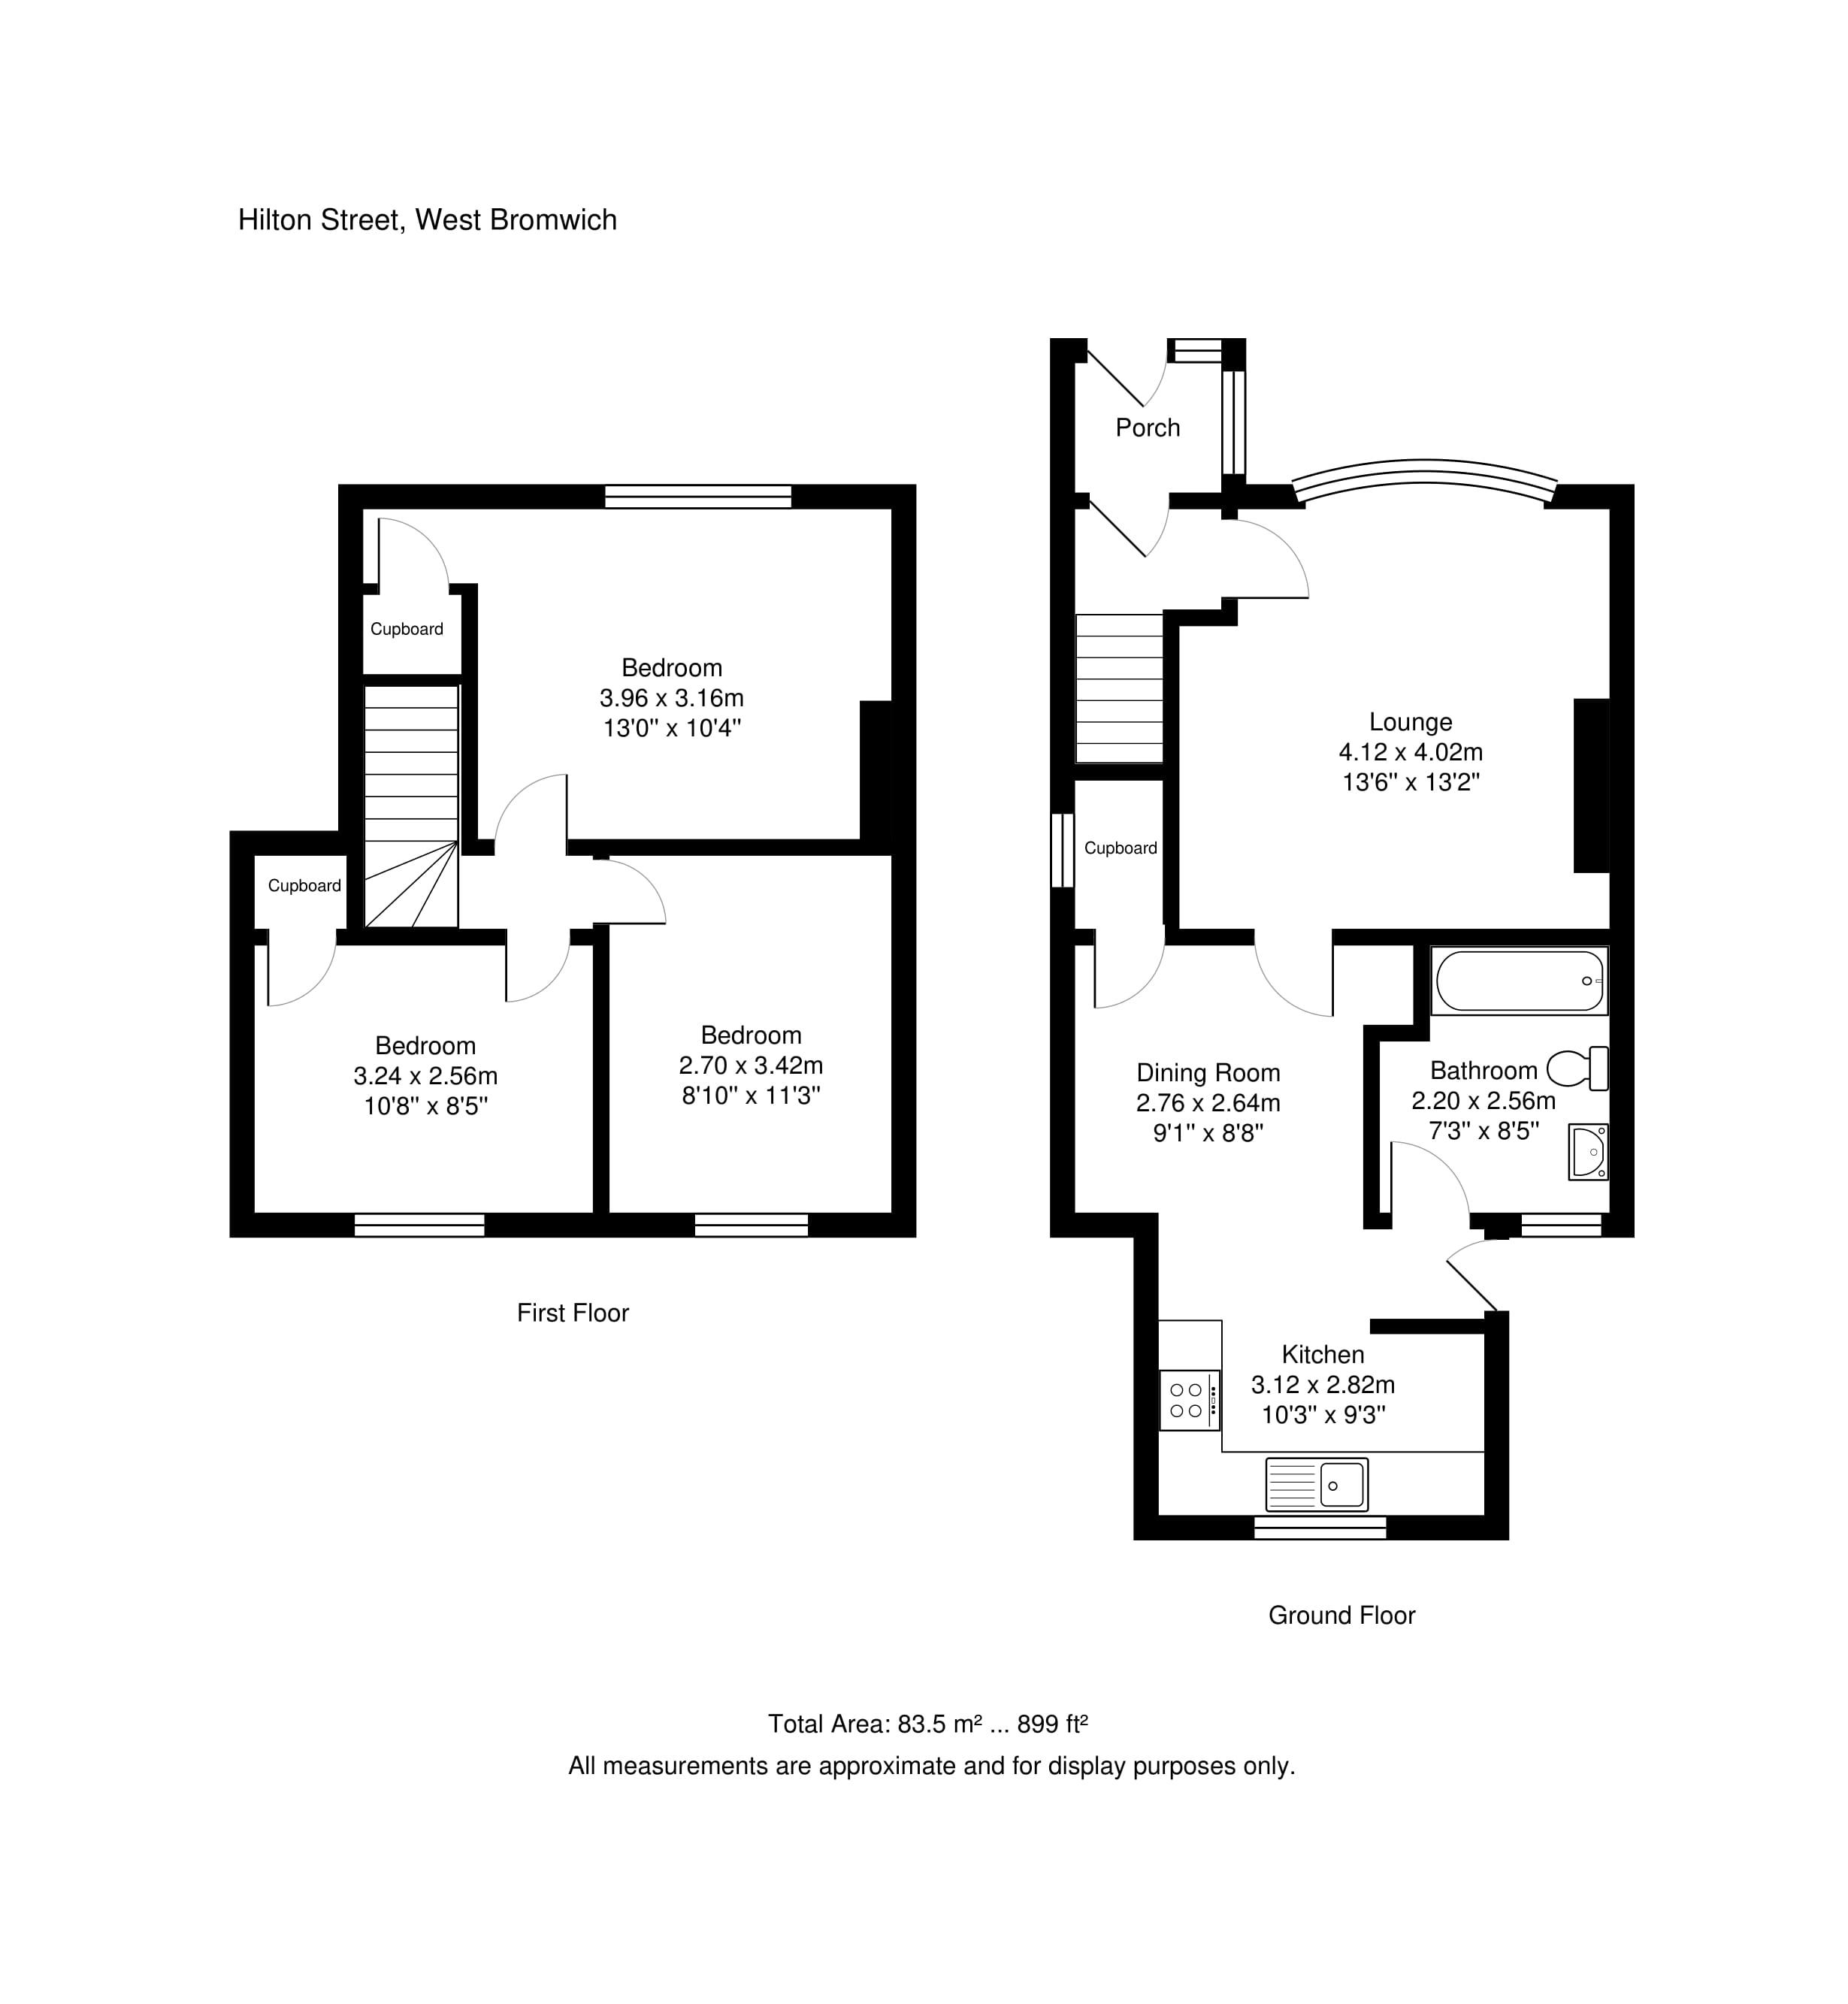 3 Bed Terraced House For Sale In Hilton Street West